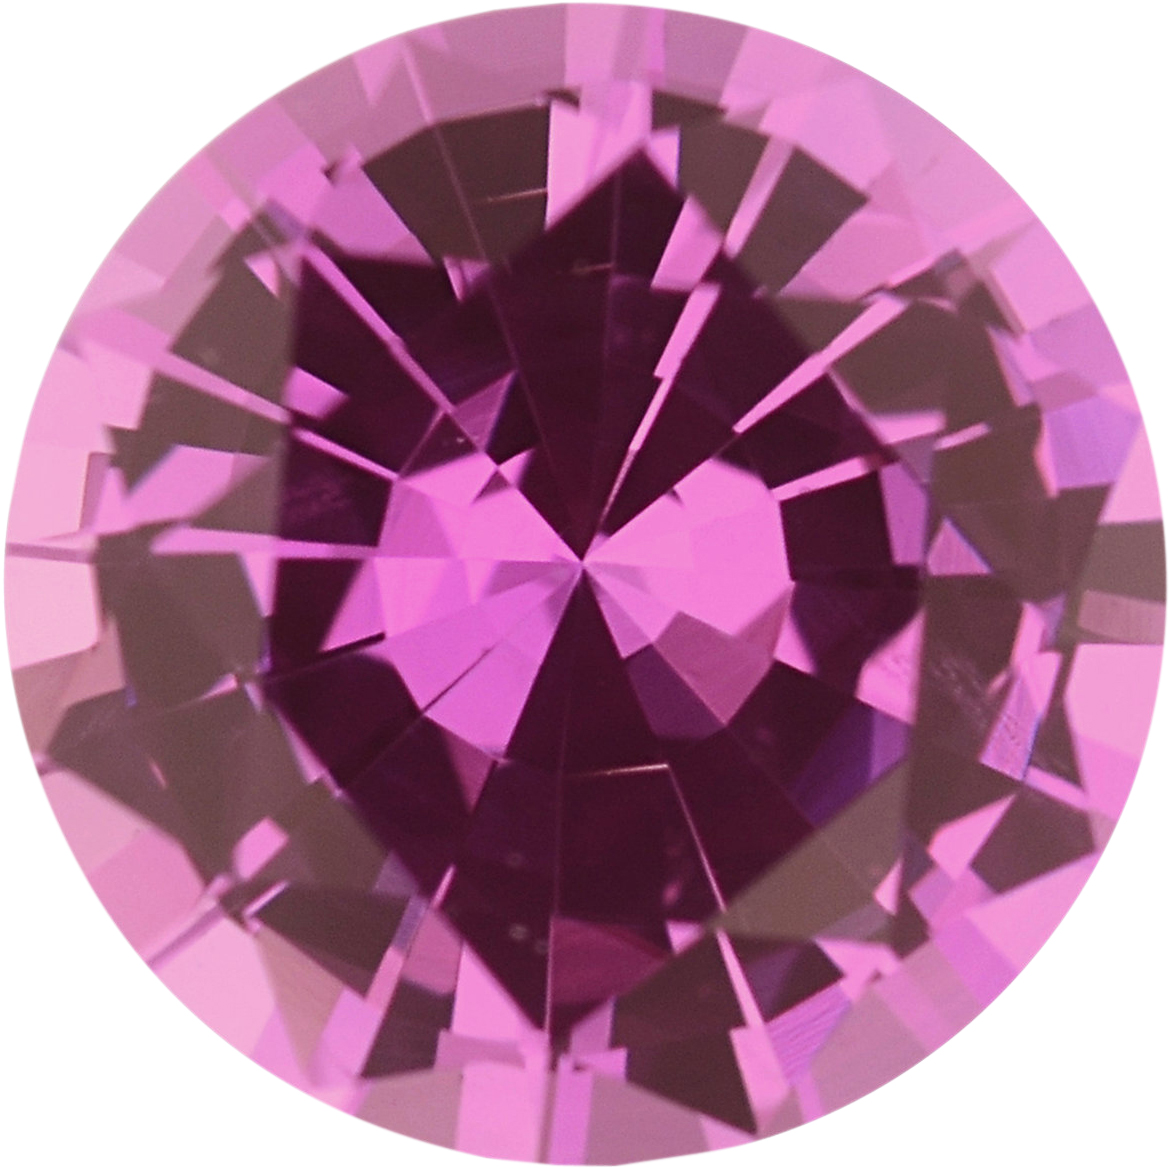 0.81 carats Pink Loose Sapphire Gemstone in Round Cut, 5.87 mm